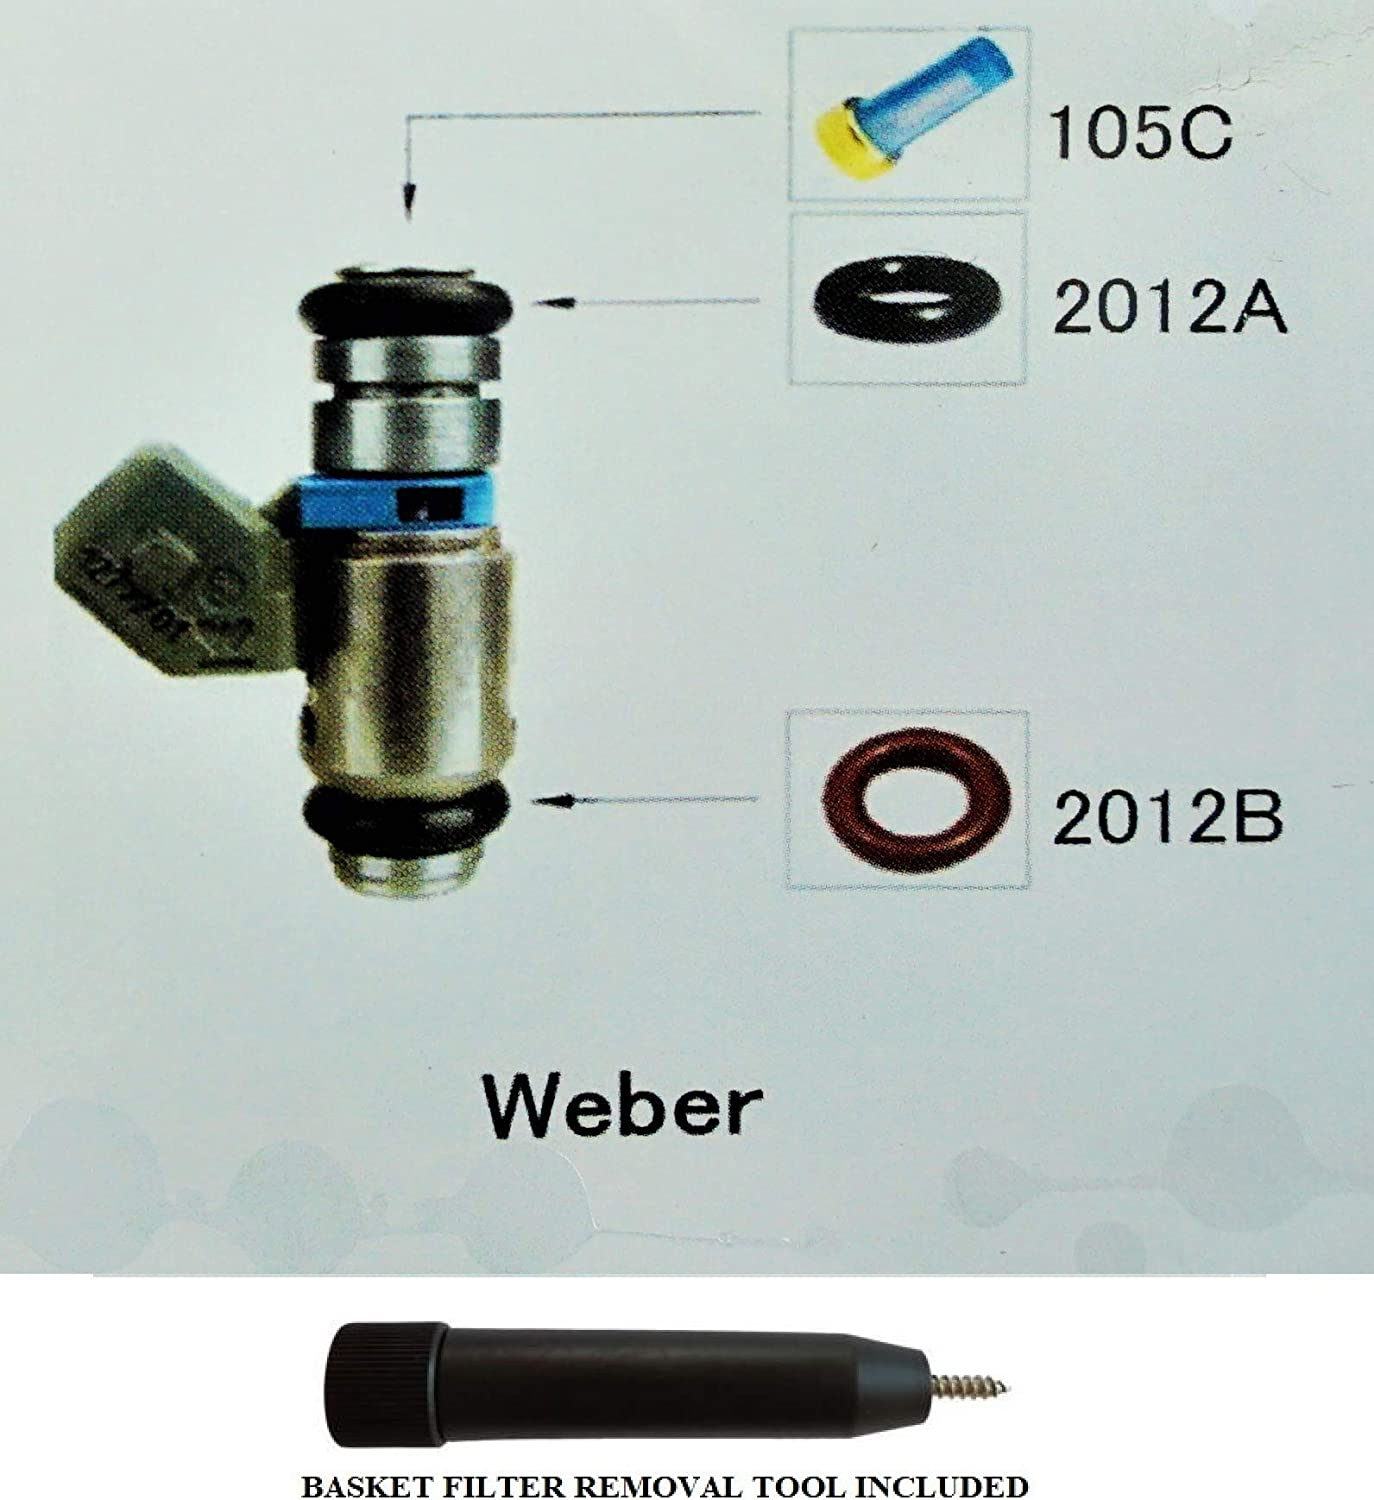 Fuel Injector Rebuild Kit for WEBER with Optional Filter Removal Tool Complete